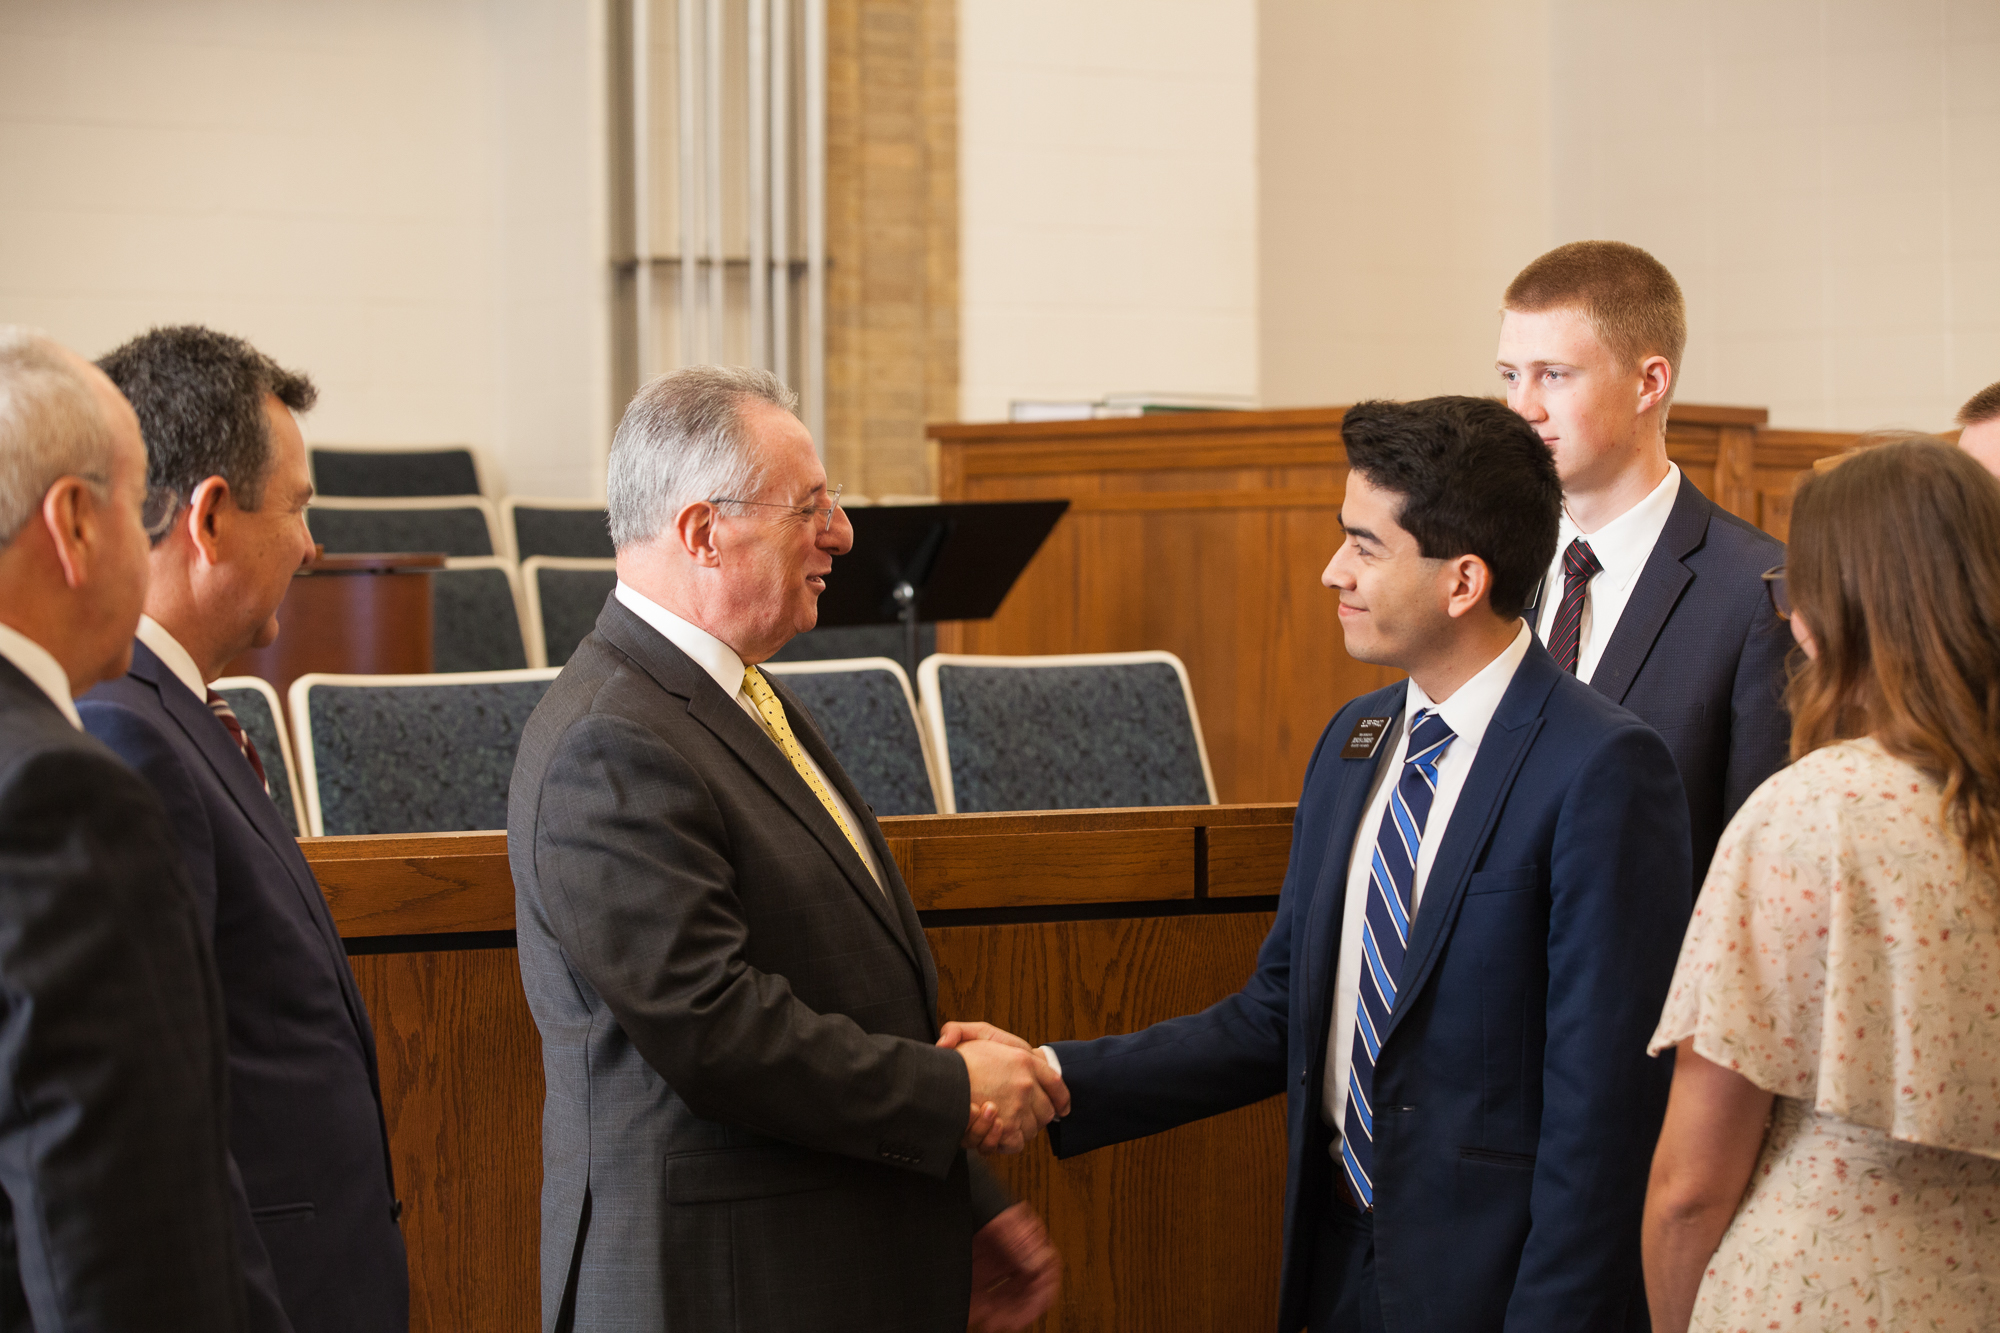 Elder Ulisses Soares of the Quorum of the Twelve Apostles meets with and encourages the Church's missionaries serving in Austin, Texas, on Friday, October 18, 2019.